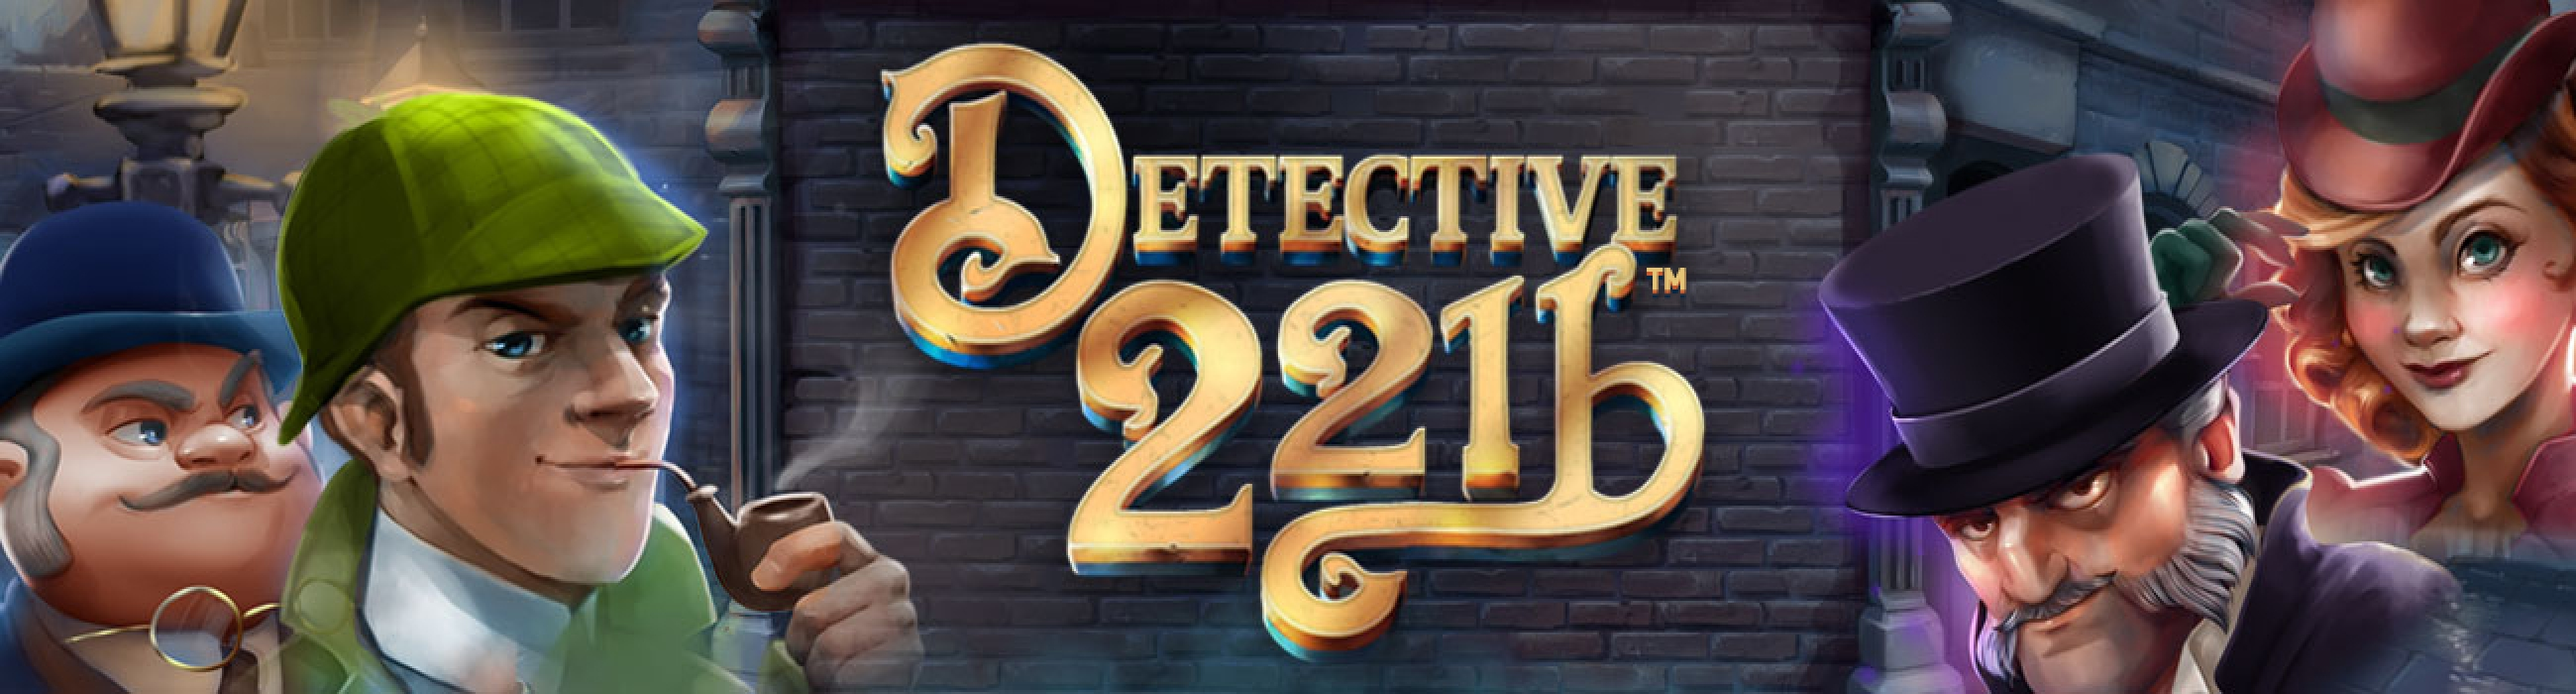 The Detective 221b Online Slot Demo Game by Mobilots